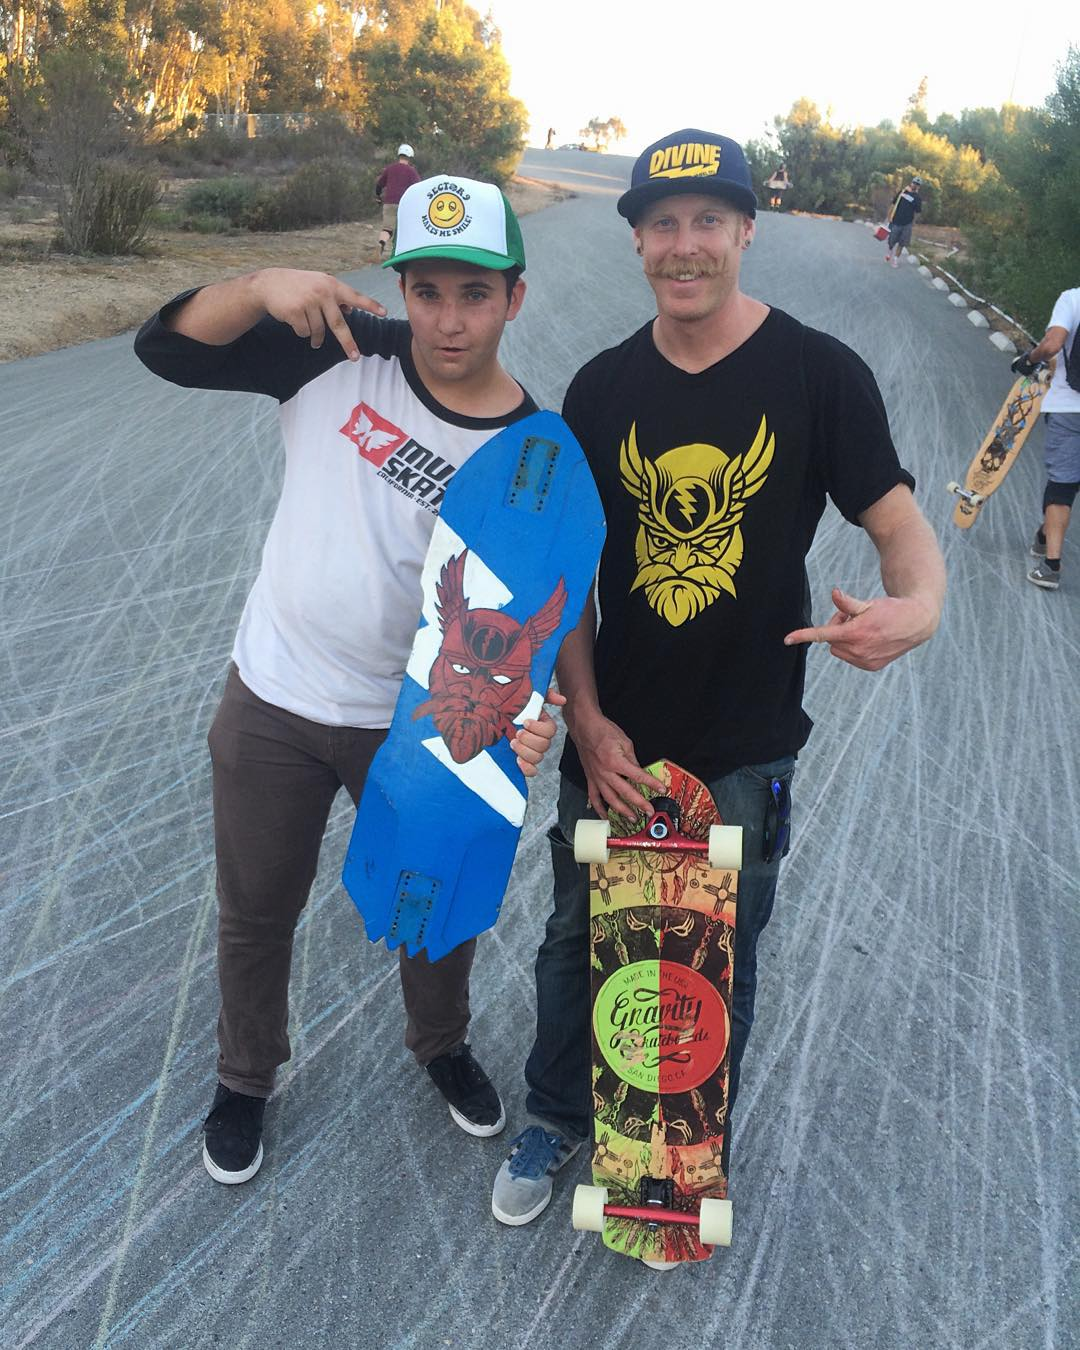 Repping hard! @thee_dictionary has always been a huge supporter of #divinewheelco. Last week he ran into @_ricker_ at the #turkeyslidejam and showed him his hand painted #odin graphic on one of his boards. Standing on a mountain of #thanelines they...